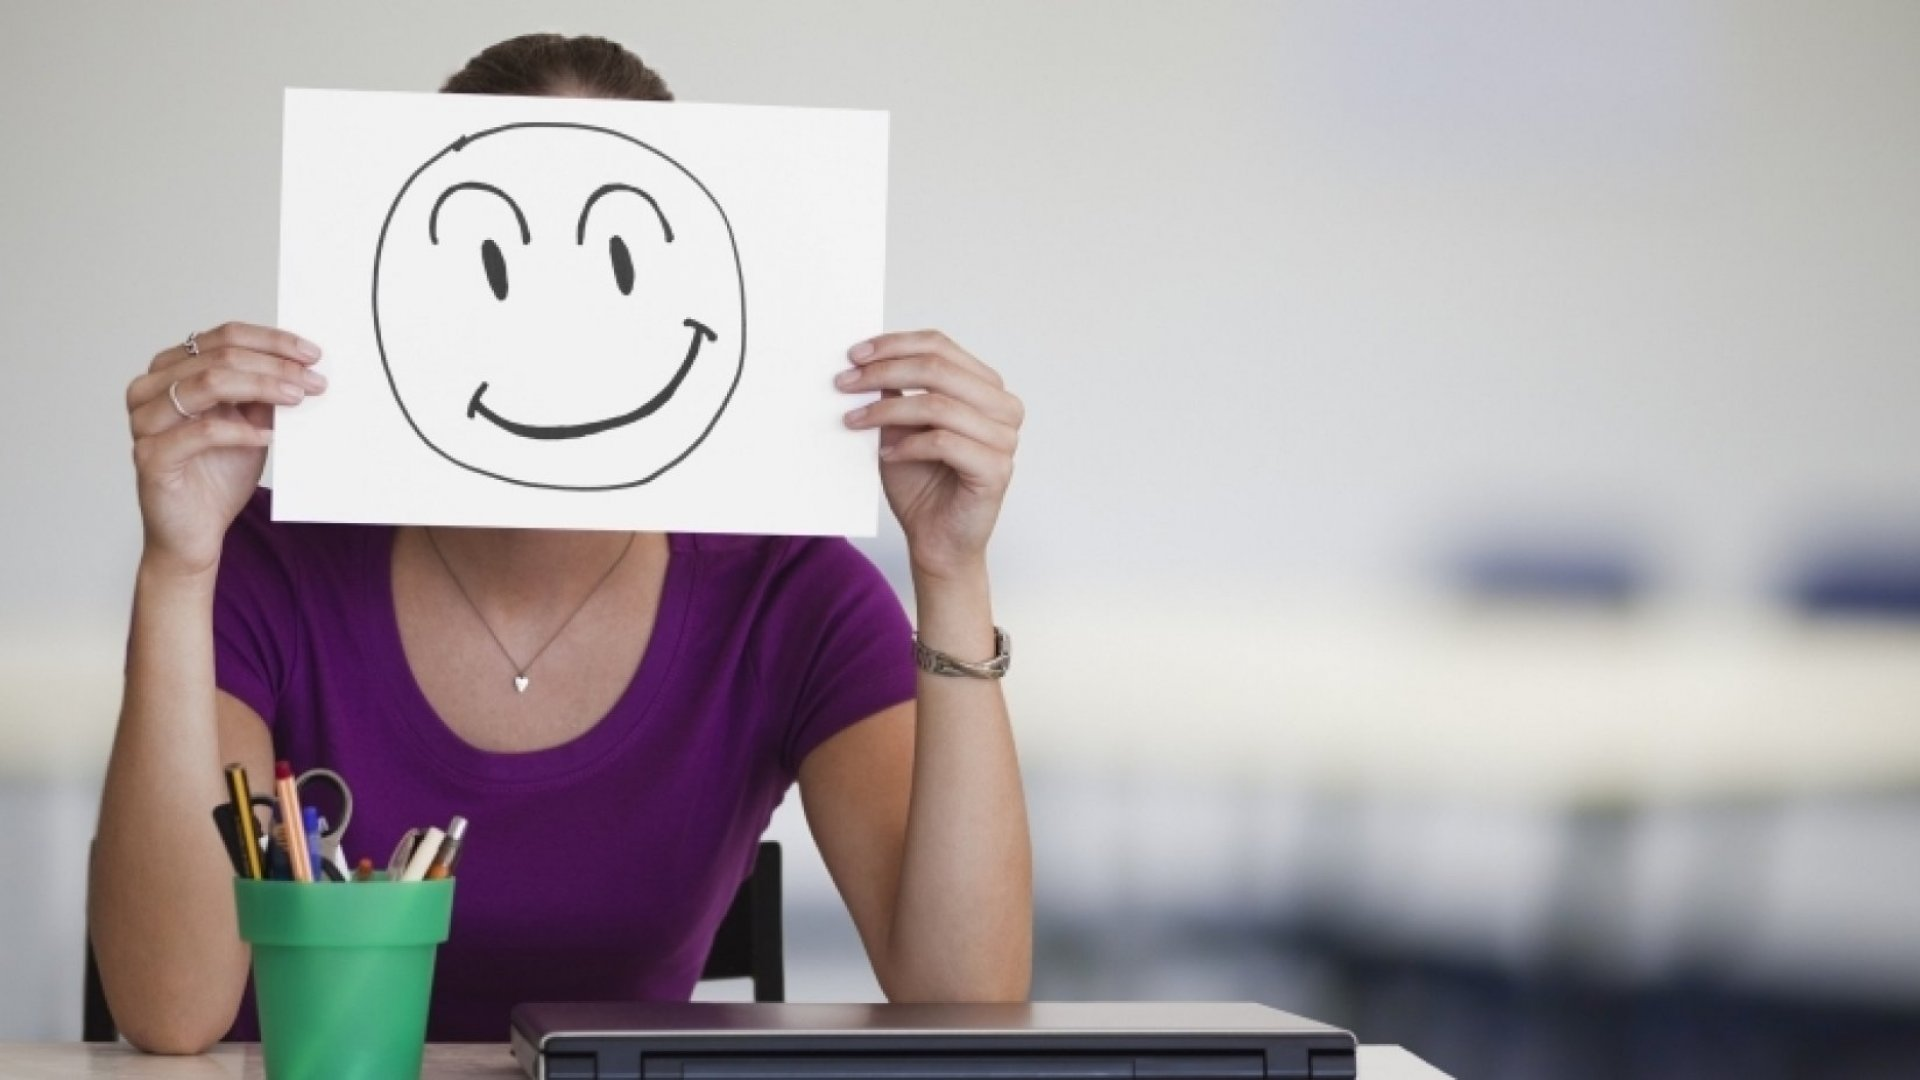 3 Questions Every Entrepreneur Should Ask Themselves To Stay Positive